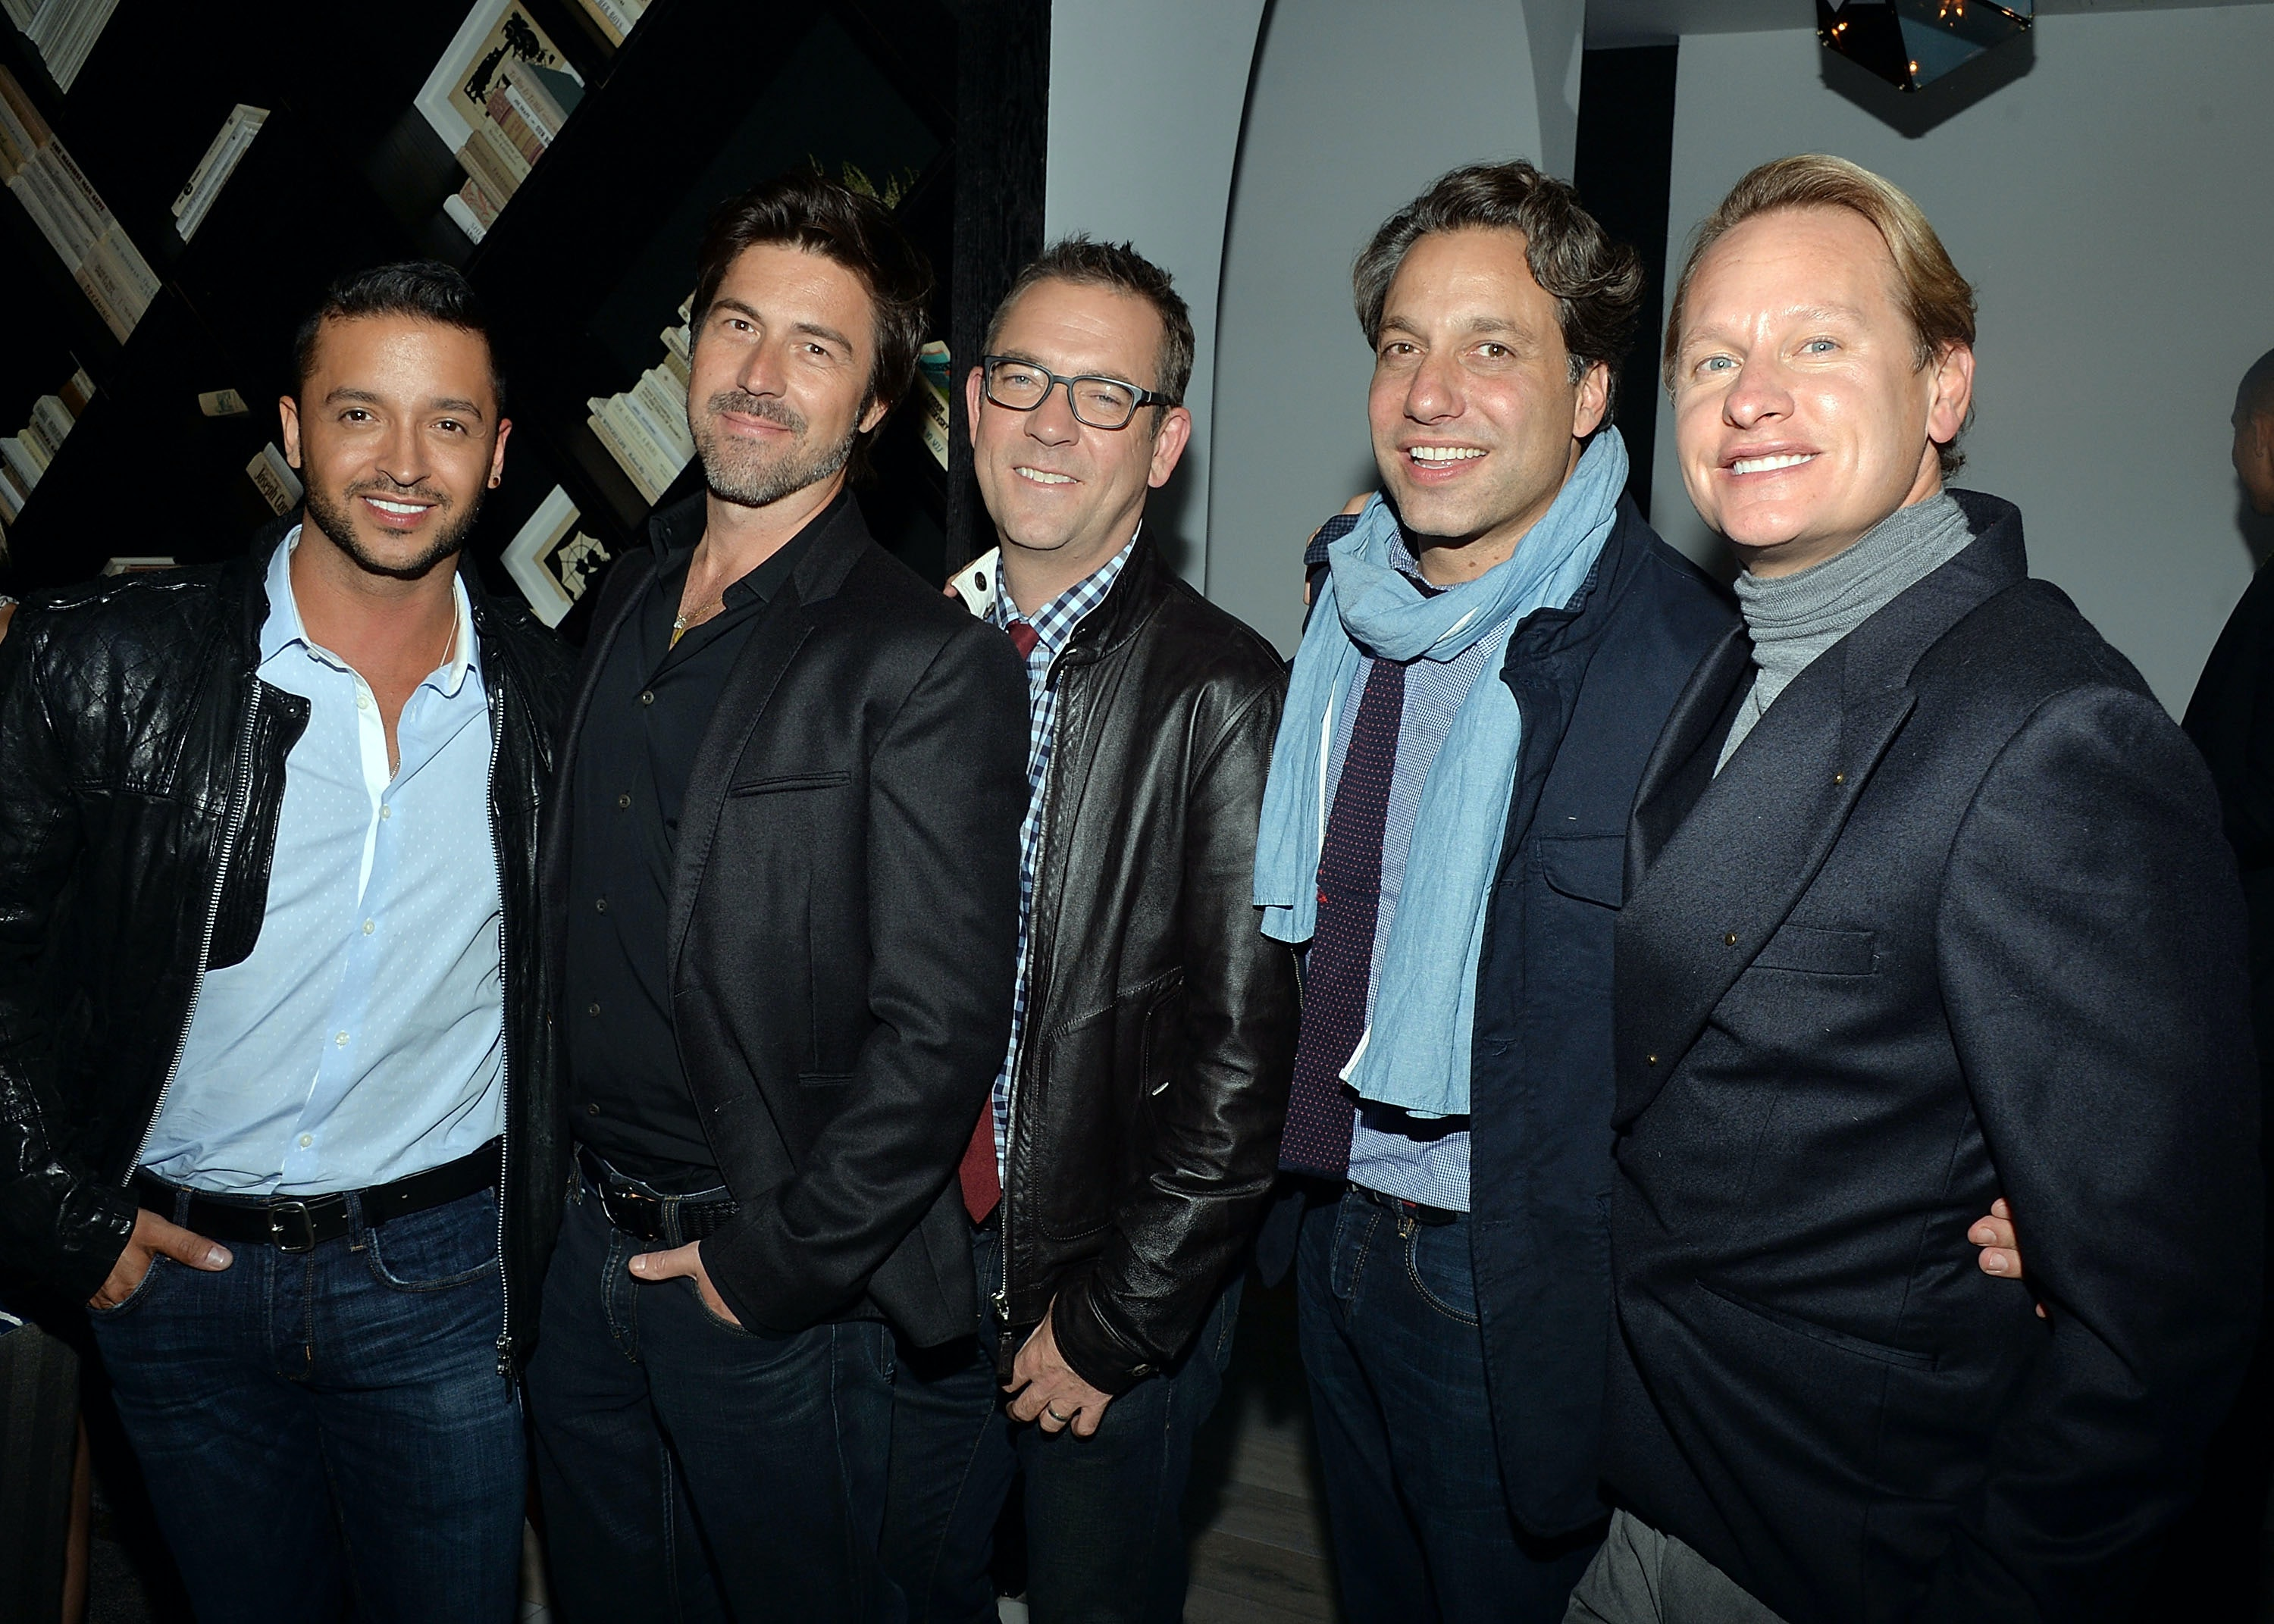 Are The Original 'Queer Eye' Cast Still Friends? The First